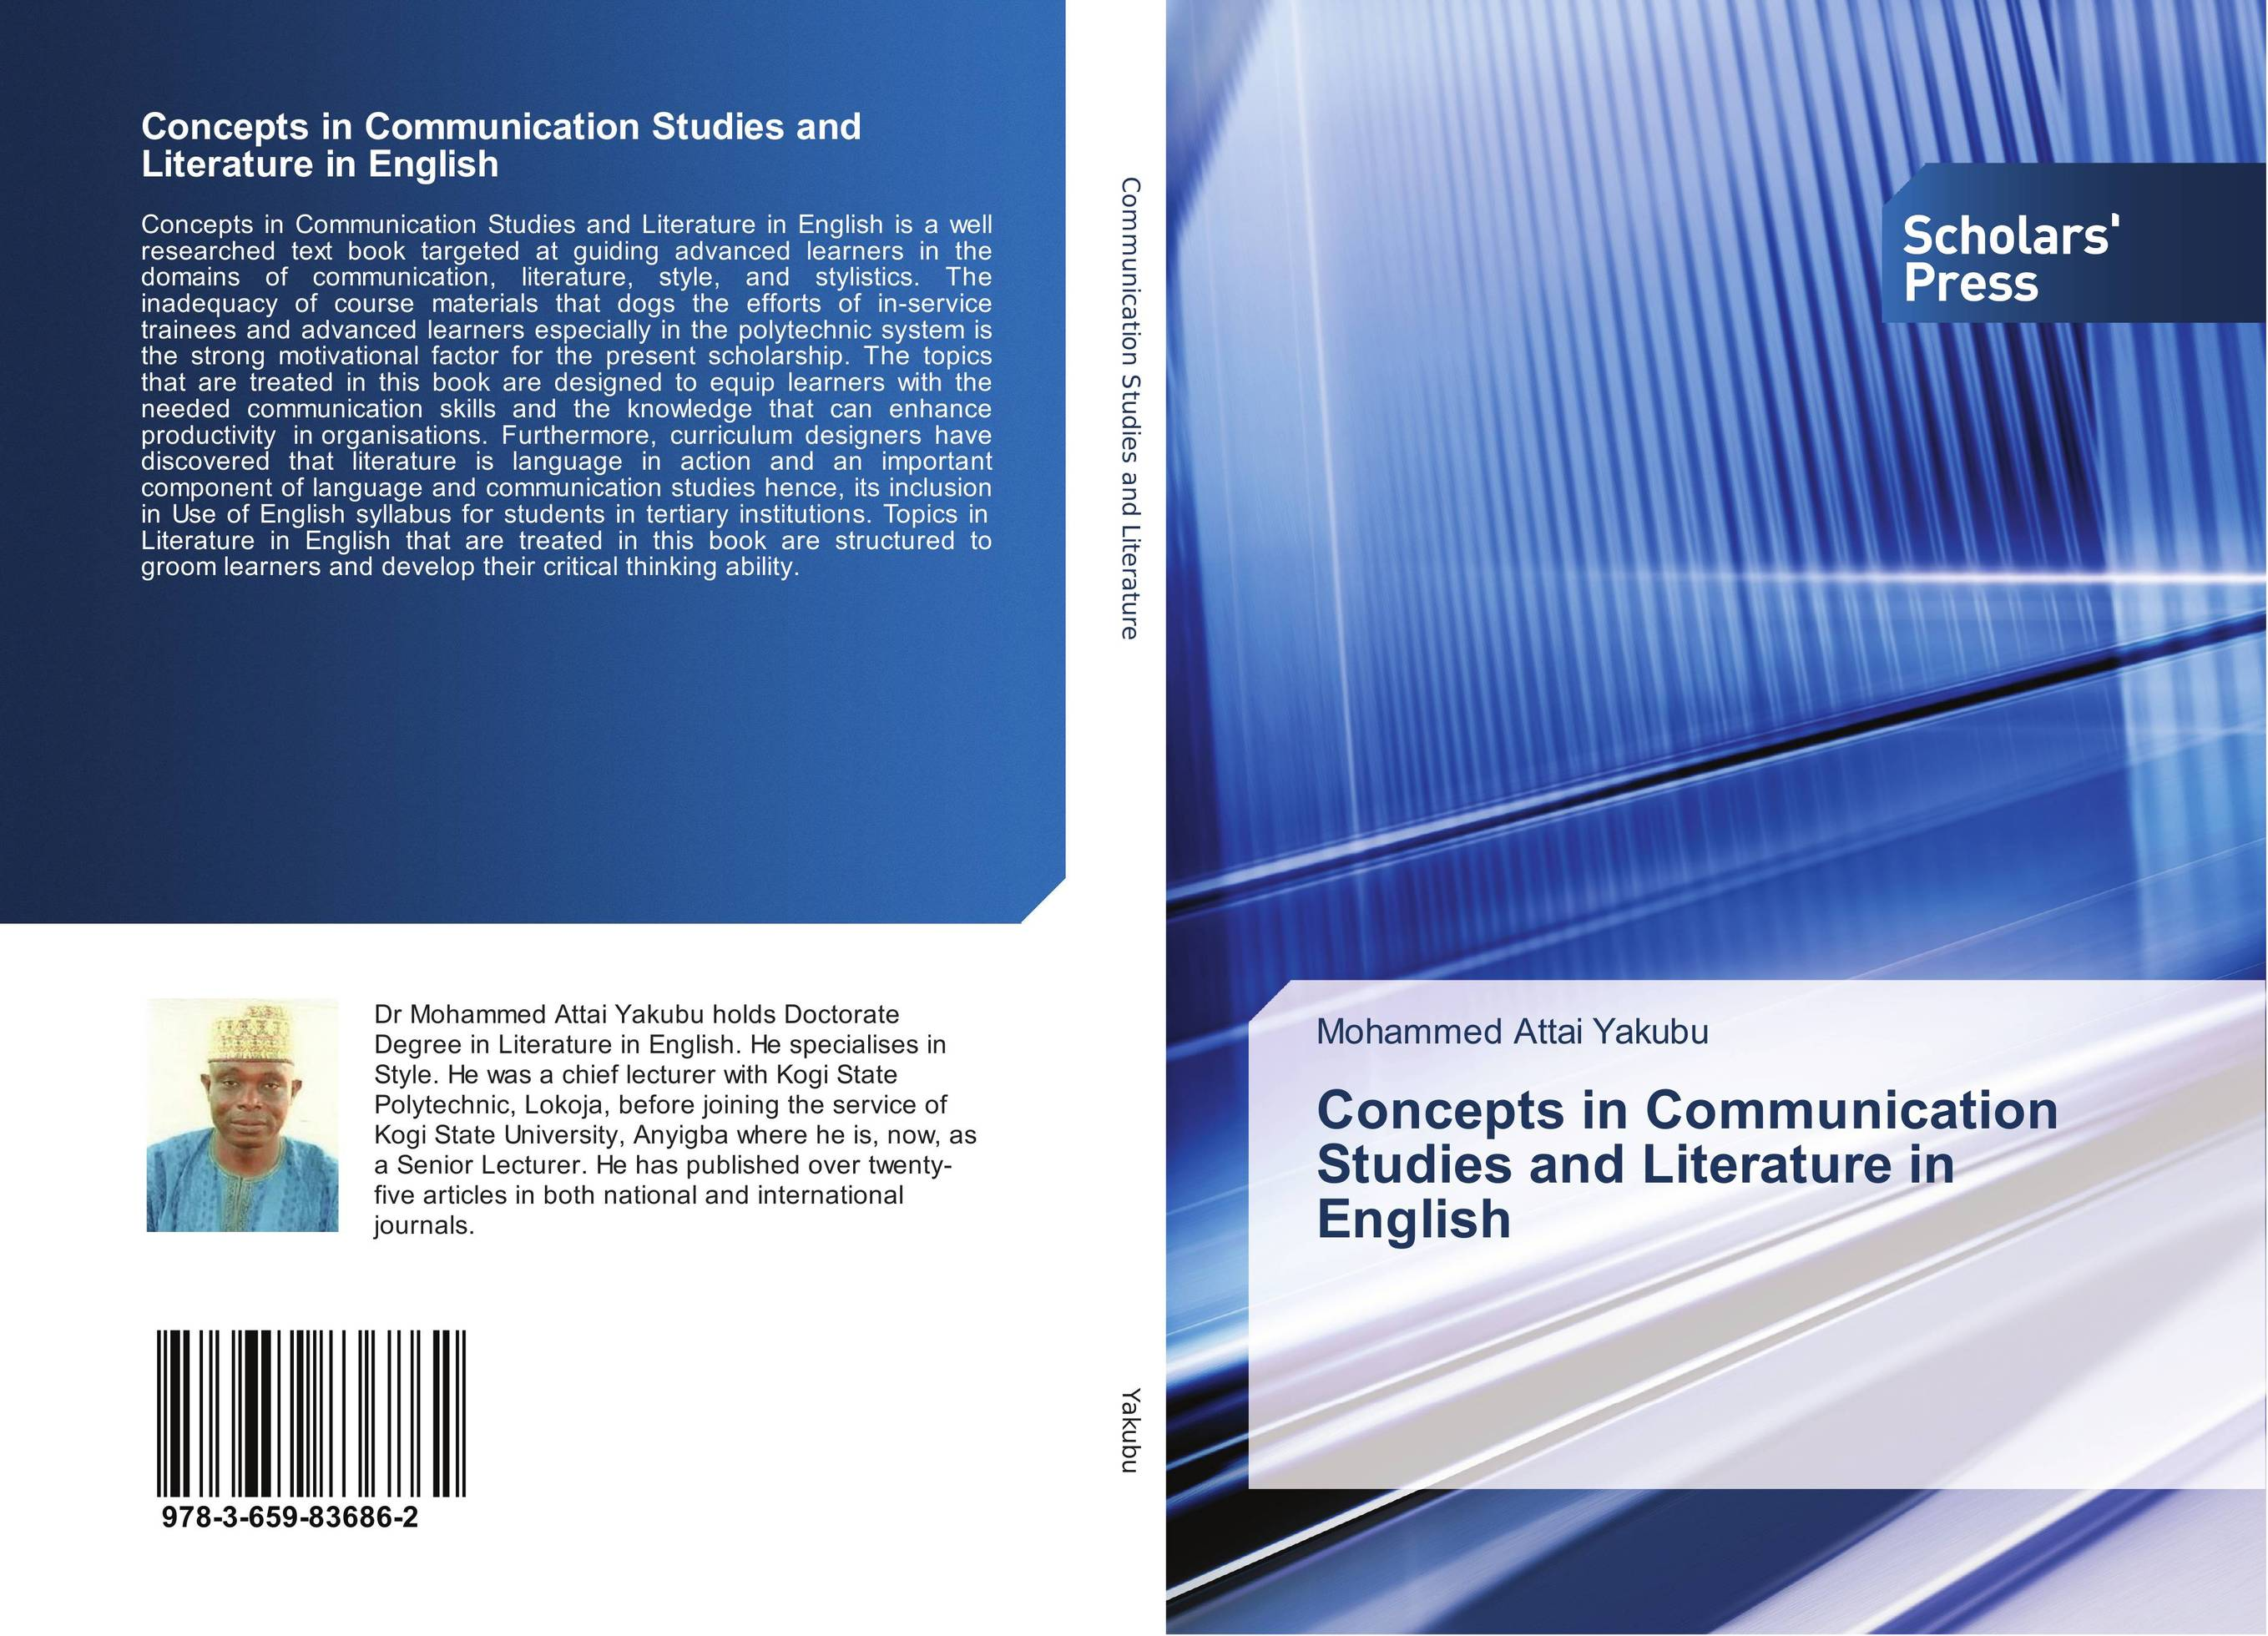 Concepts in Communication Studies and Literature in English purnima sareen sundeep kumar and rakesh singh molecular and pathological characterization of slow rusting in wheat